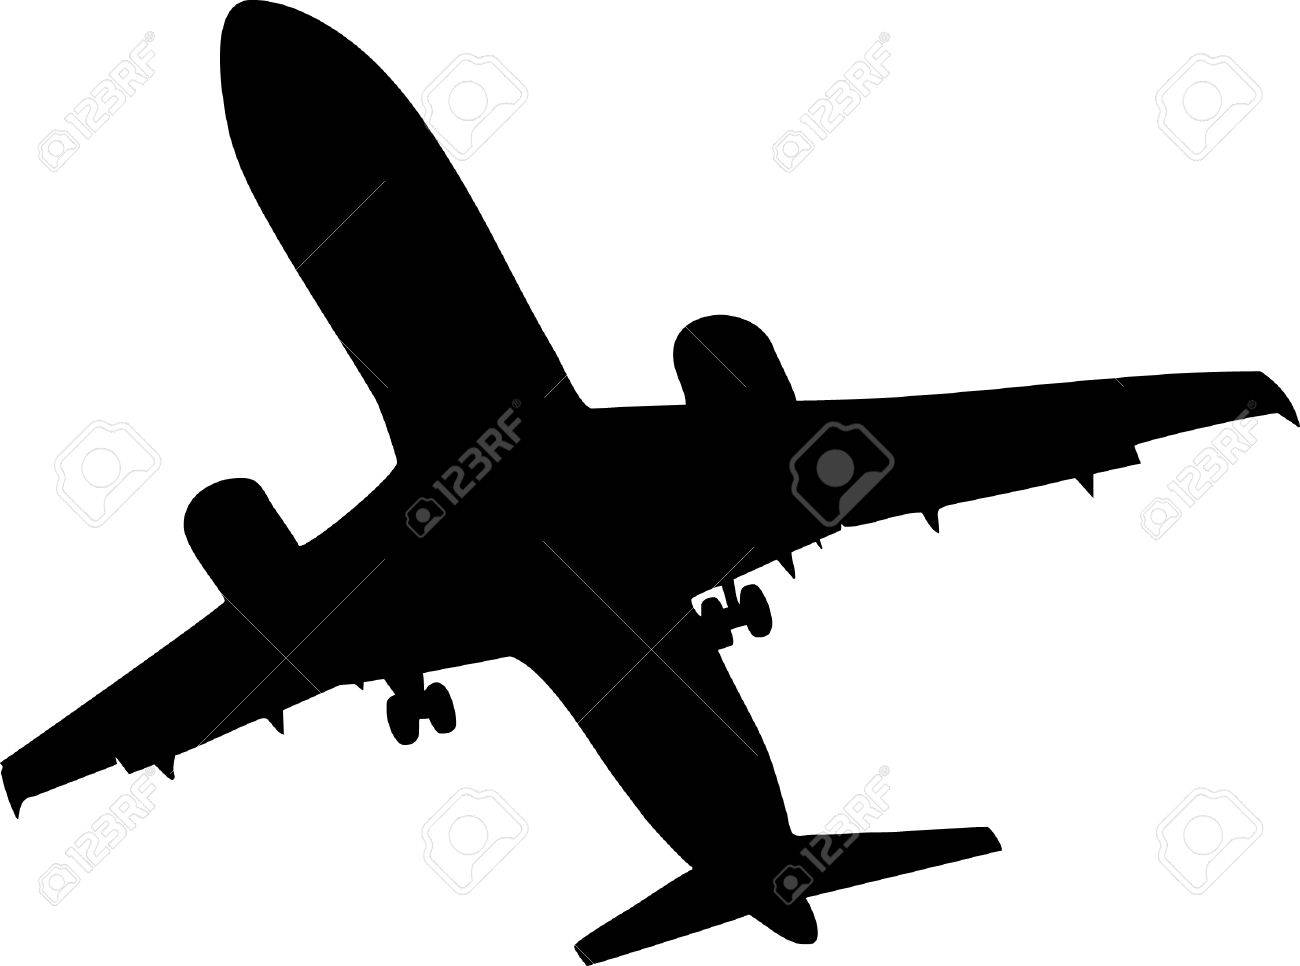 illustration of a airplane royalty free cliparts vectors and